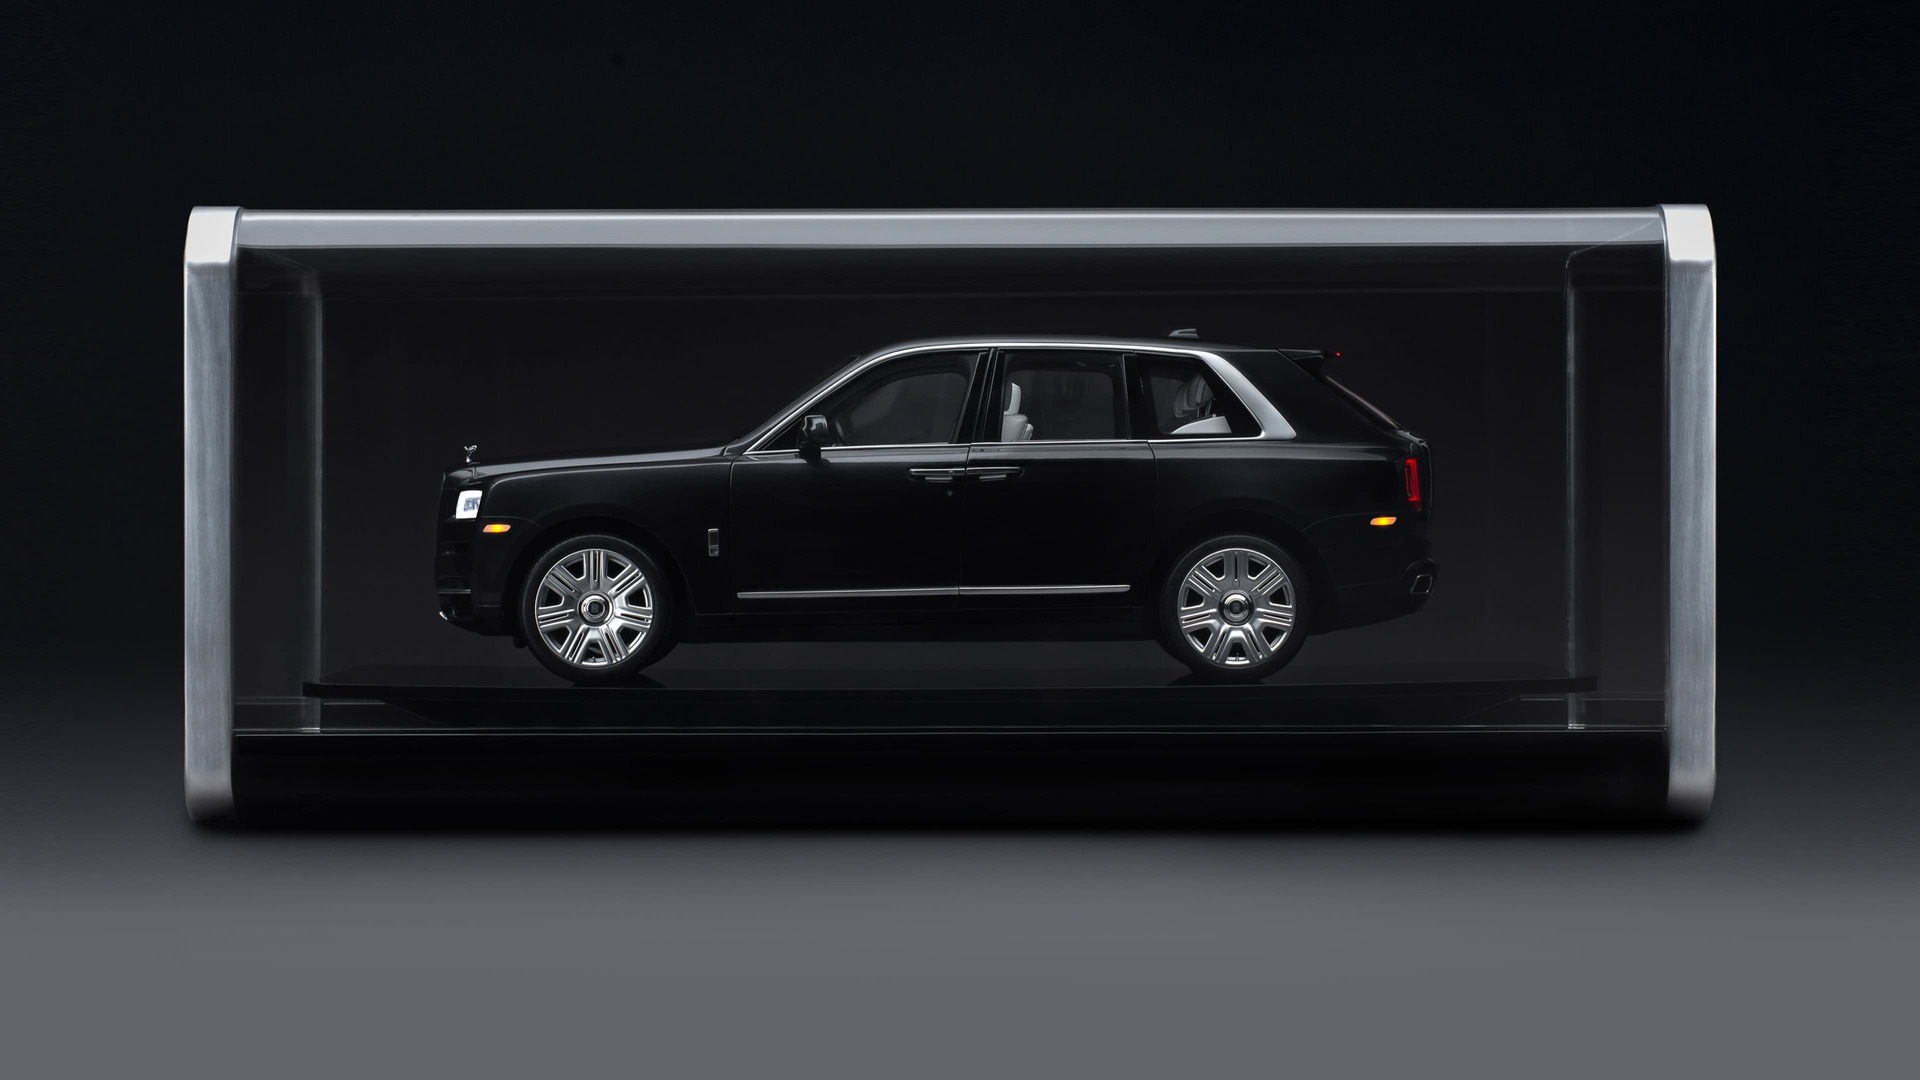 Side exterior view of the 1:8 scale model of the Rolls-Royce Cullinan motor car in glass case